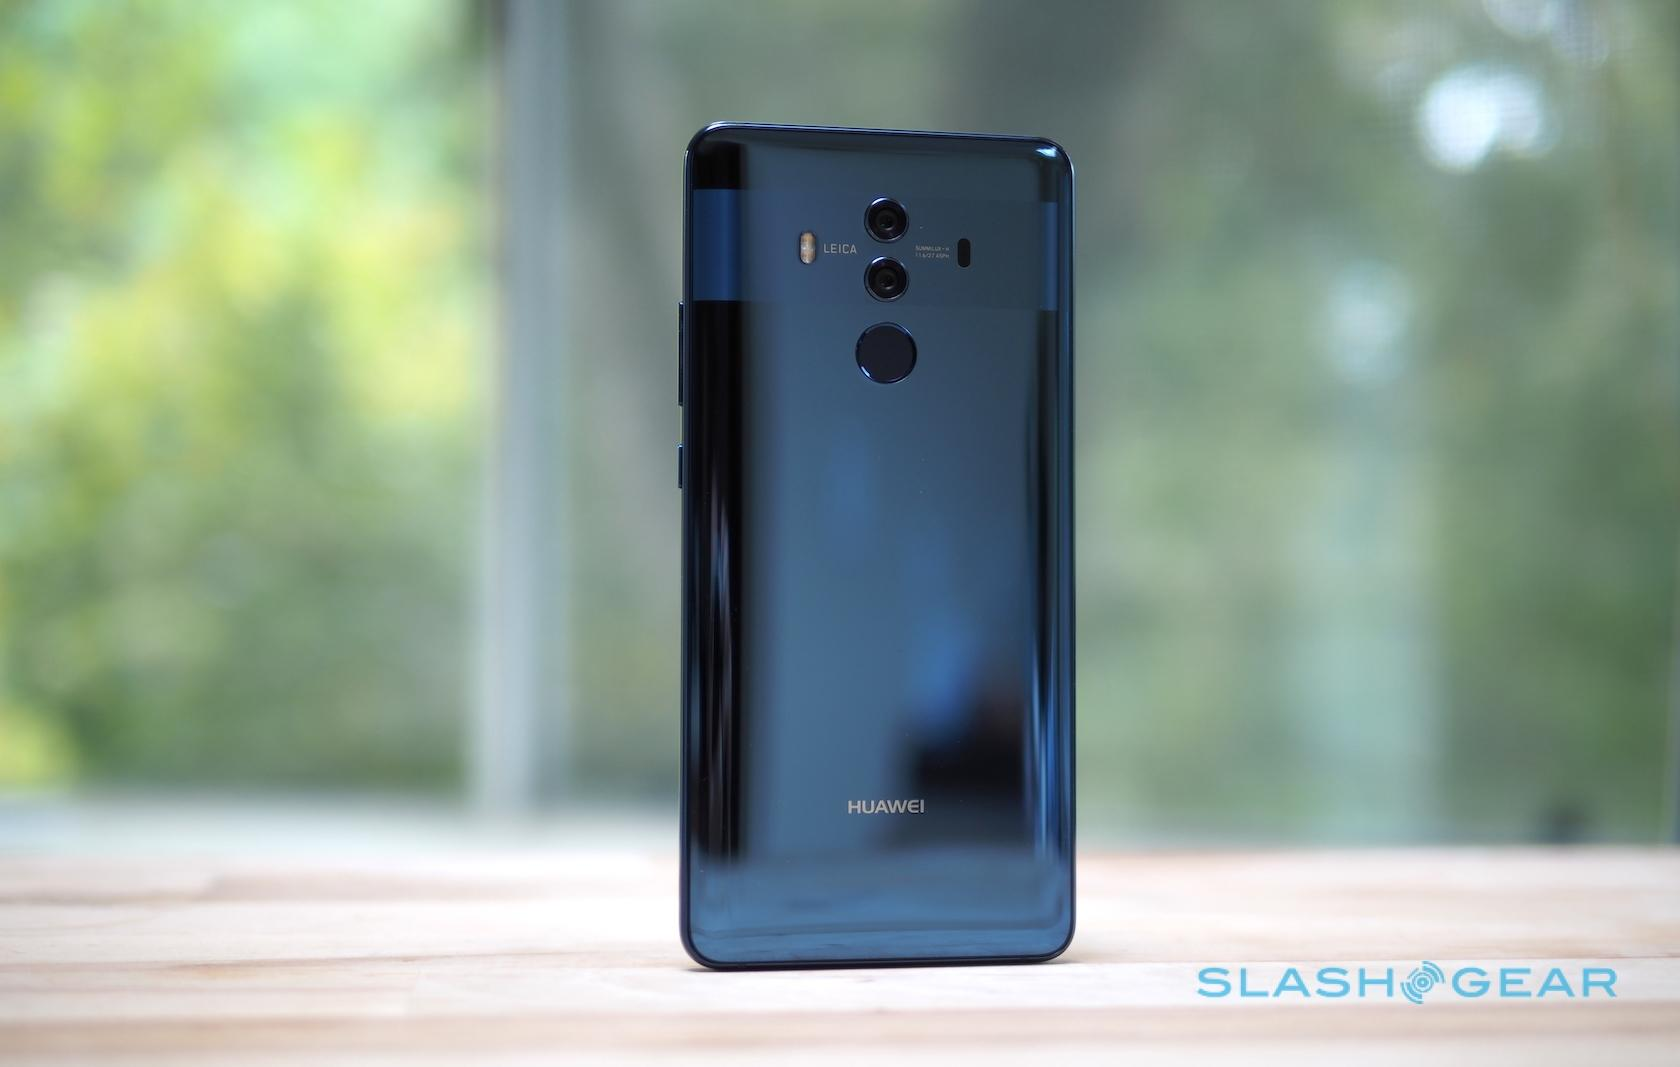 Huawei Mate 10 Pro Review: A great phone jumping through